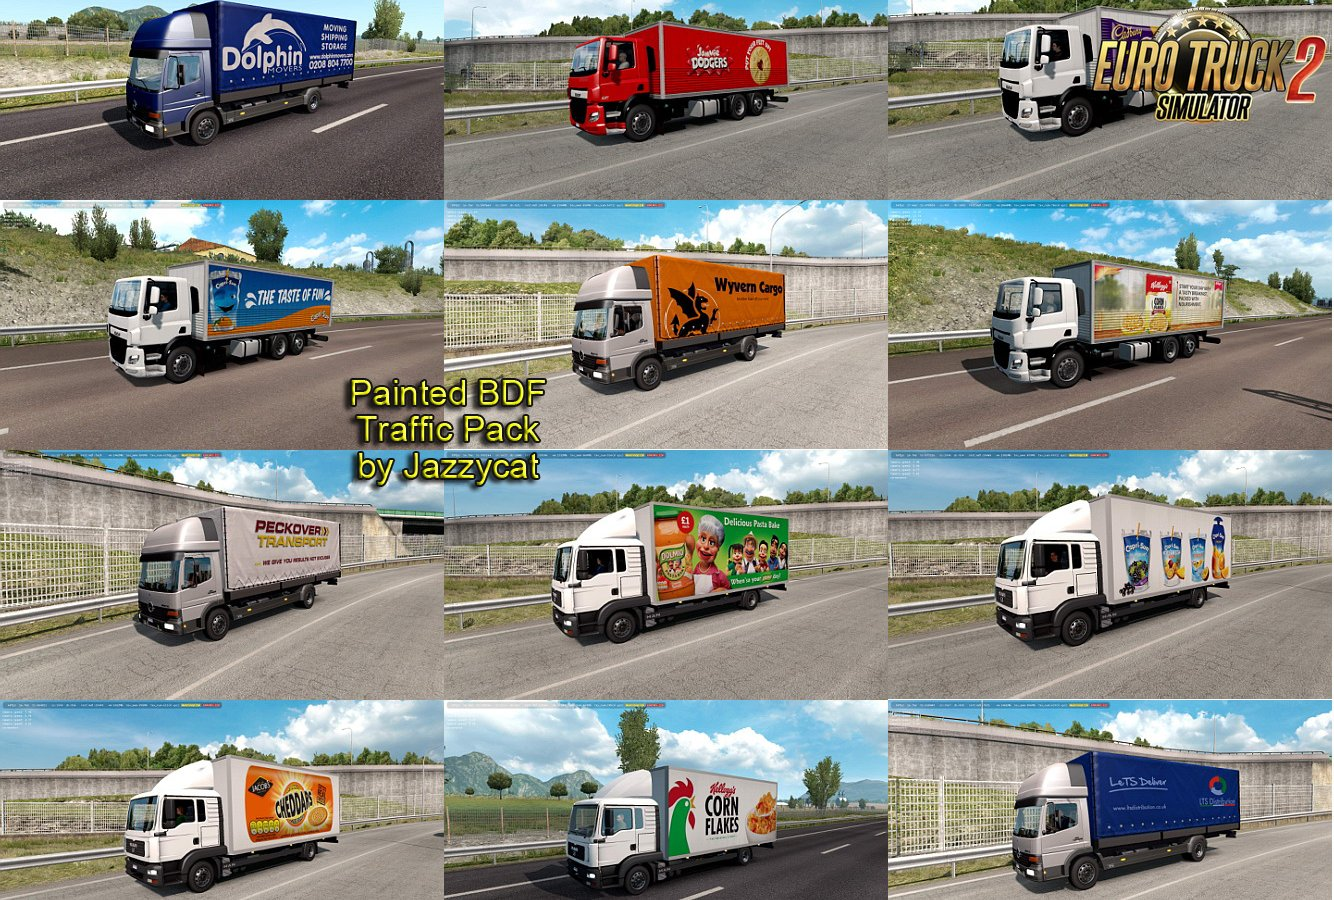 Painted BDF Traffic Pack v4.8 by Jazzycat